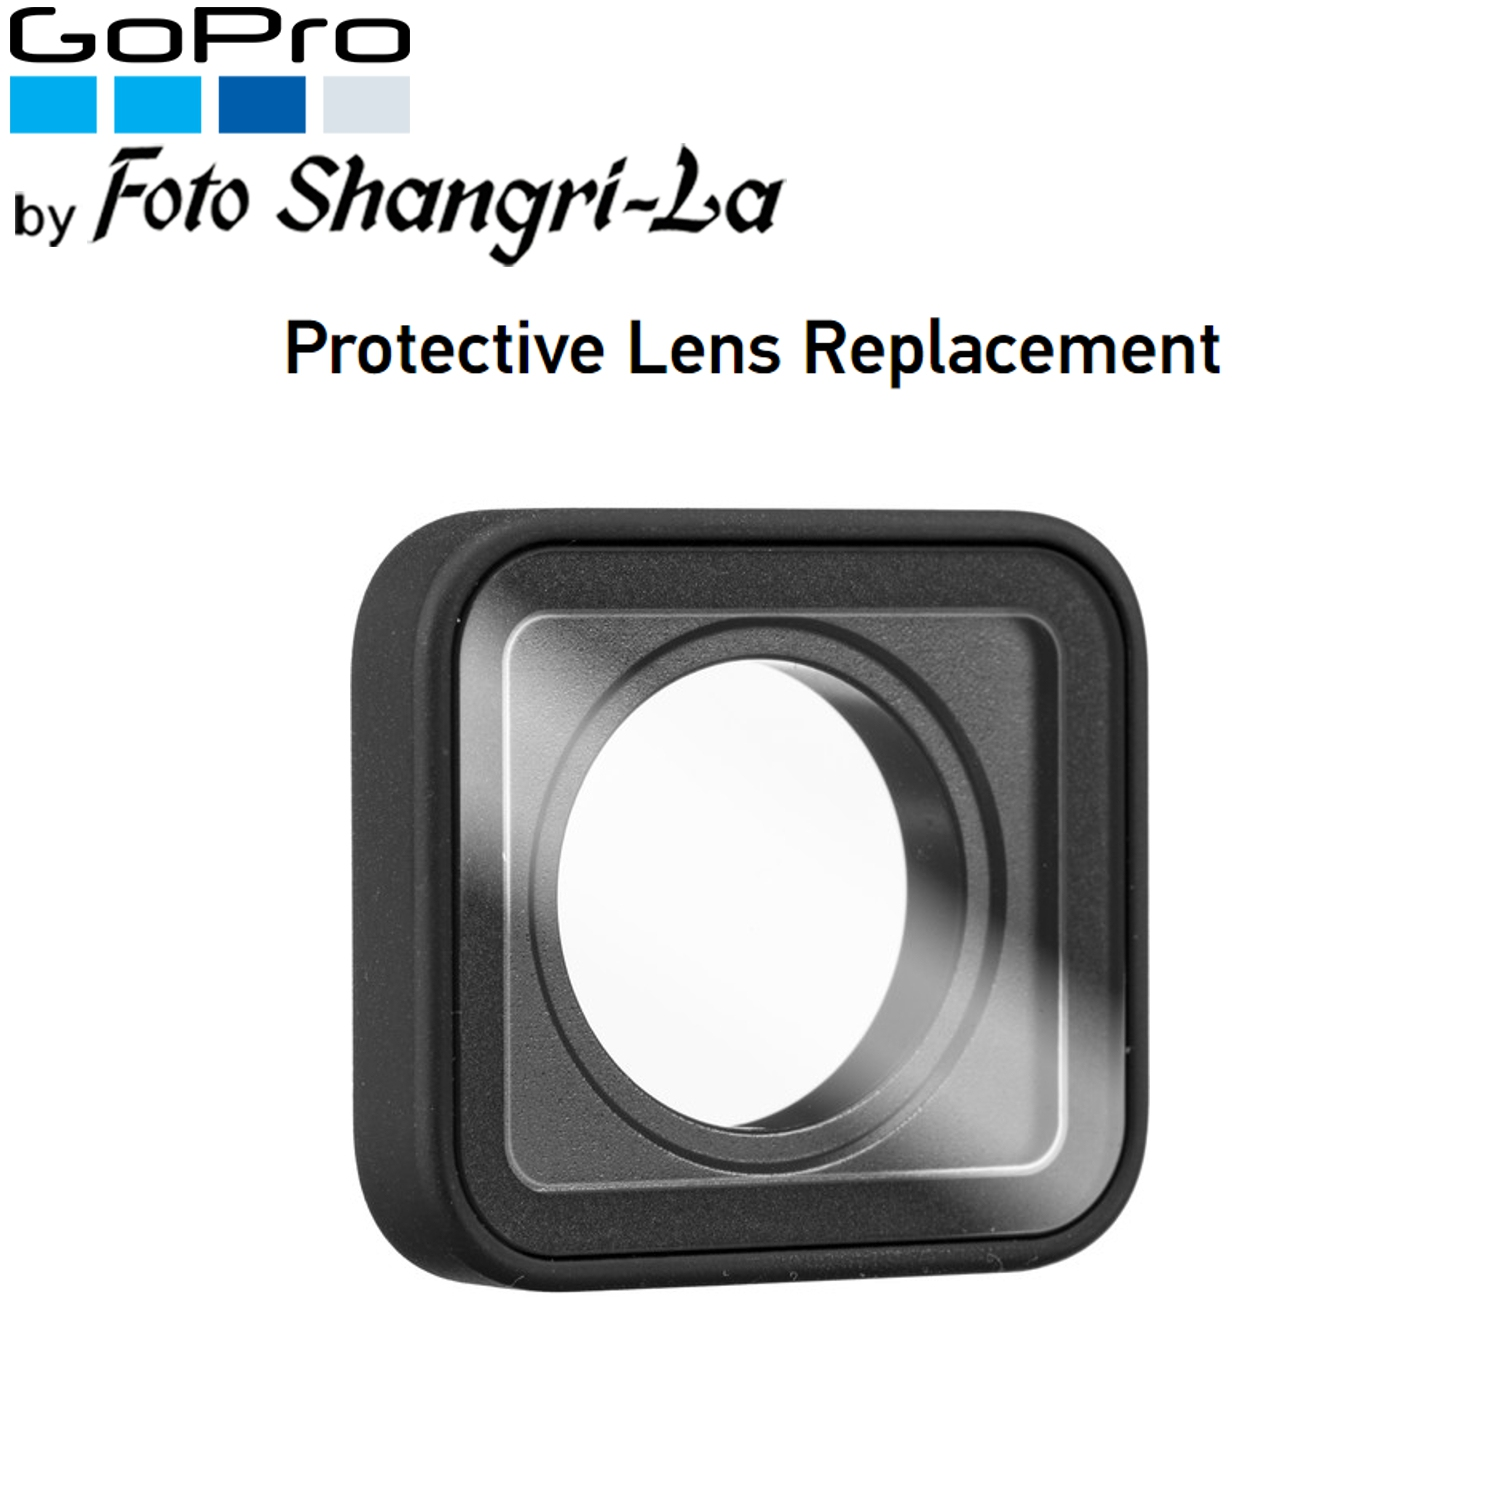 7301084ac GoPro Protective Lens Replacement f (end 4/16/2021 12:00 AM)